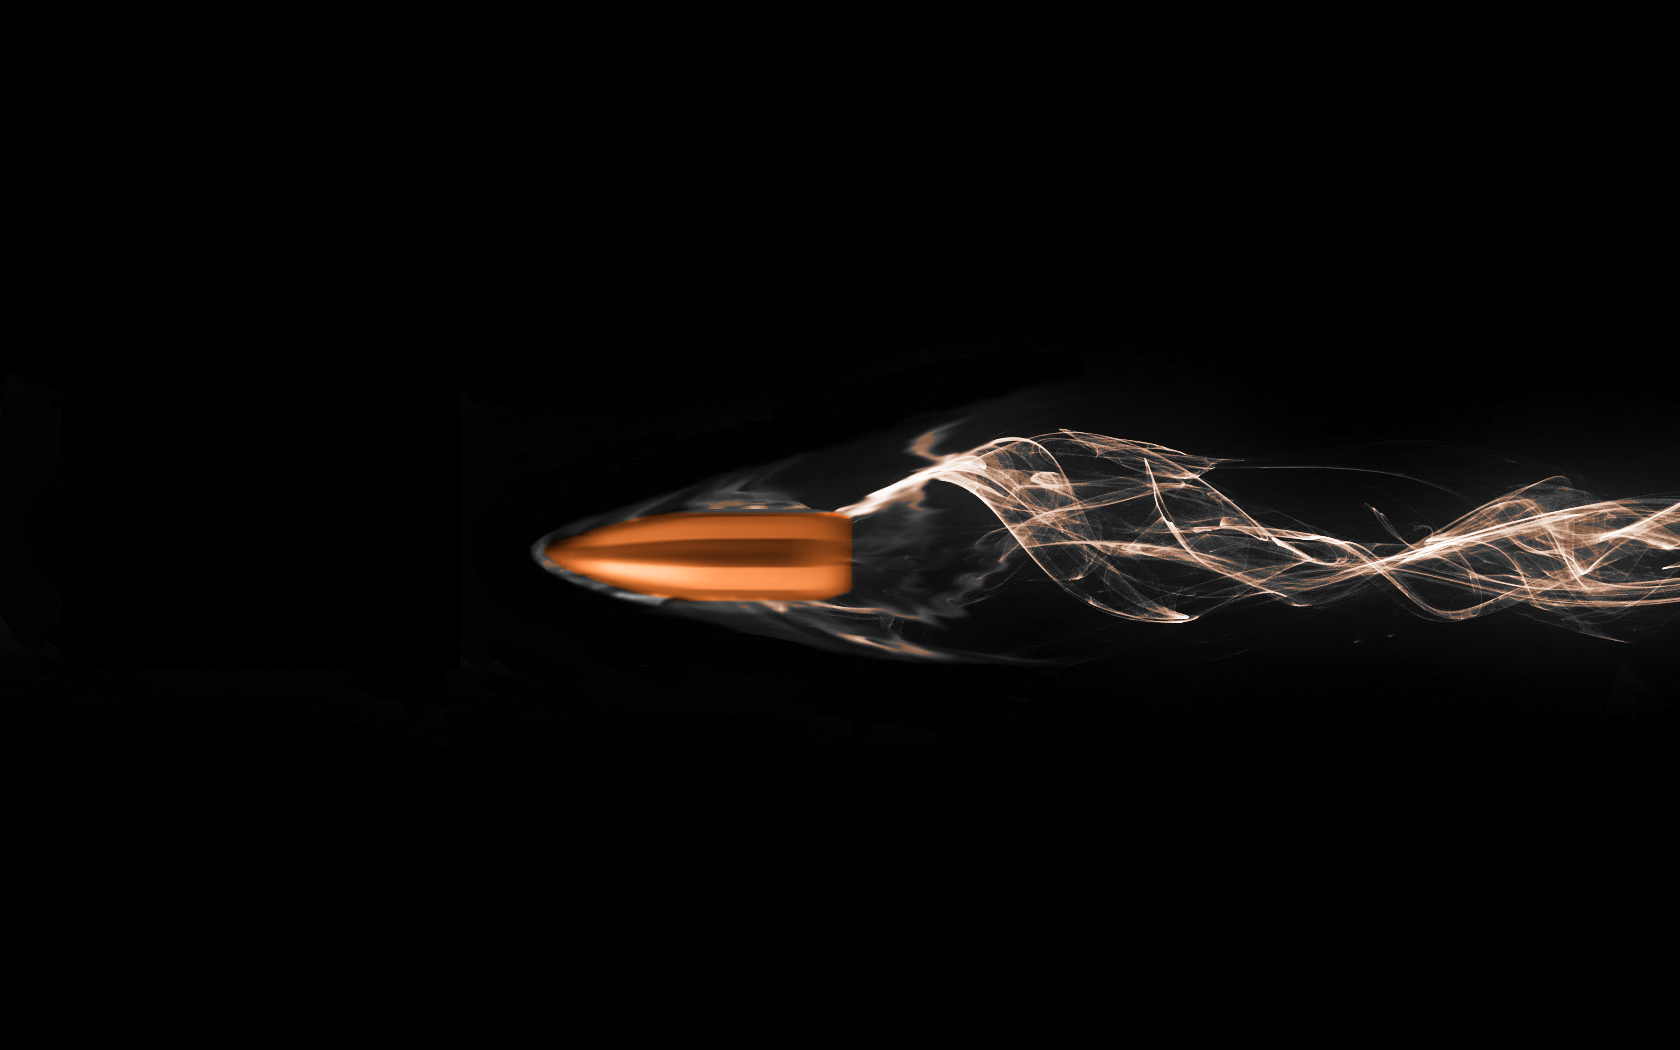 Weapons - Bullet  Wallpaper